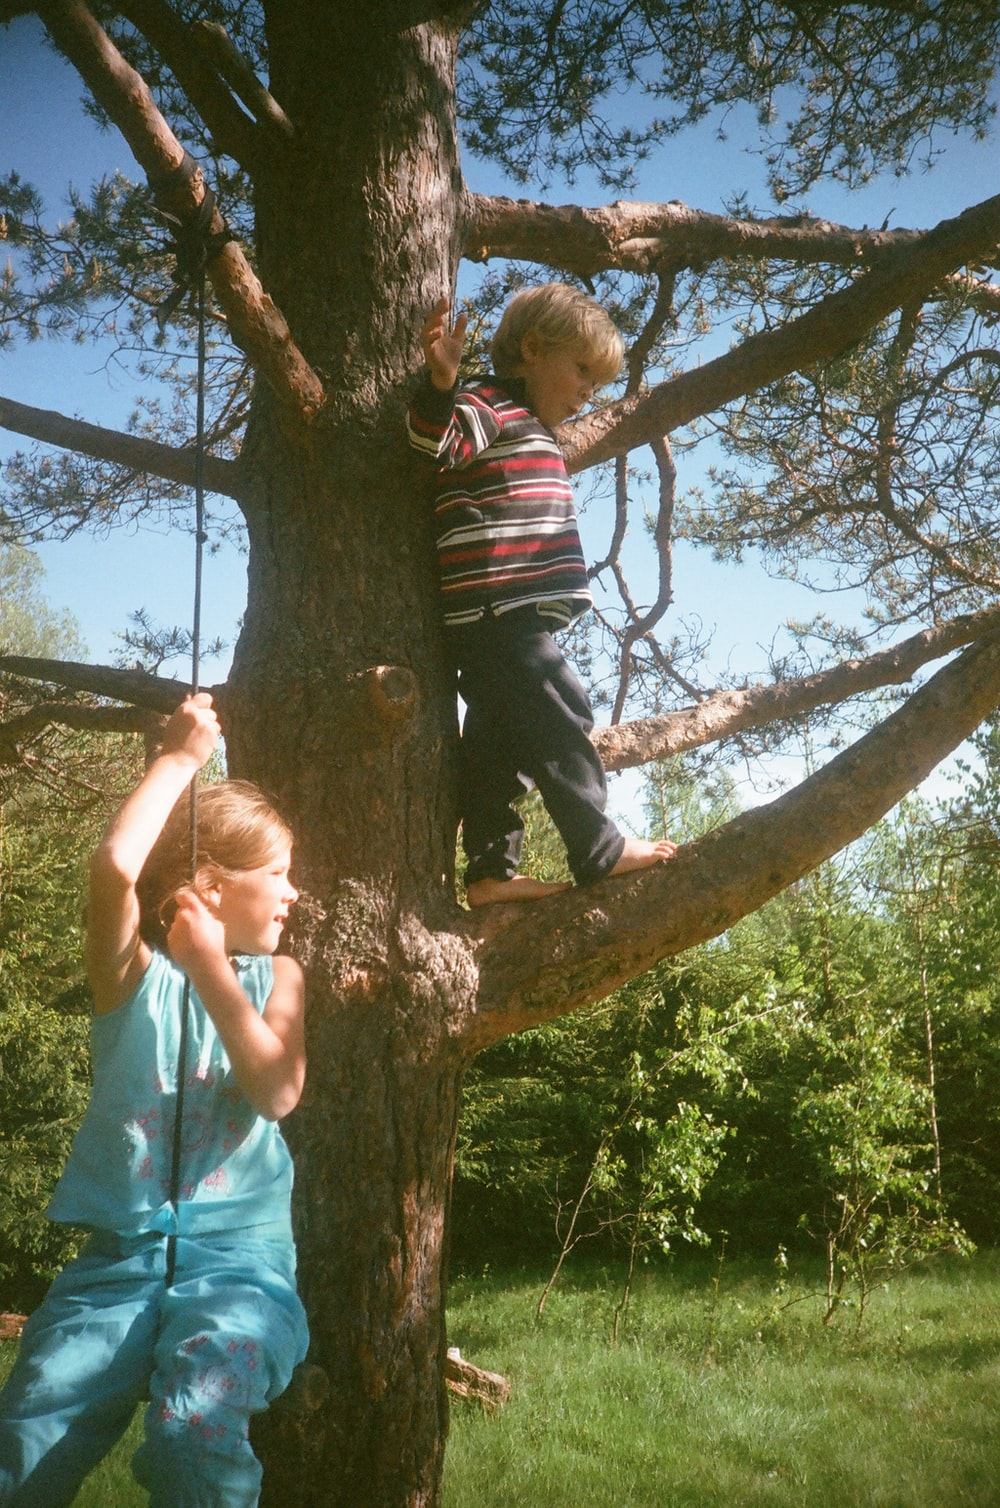 boy standing on tree branch during daytime